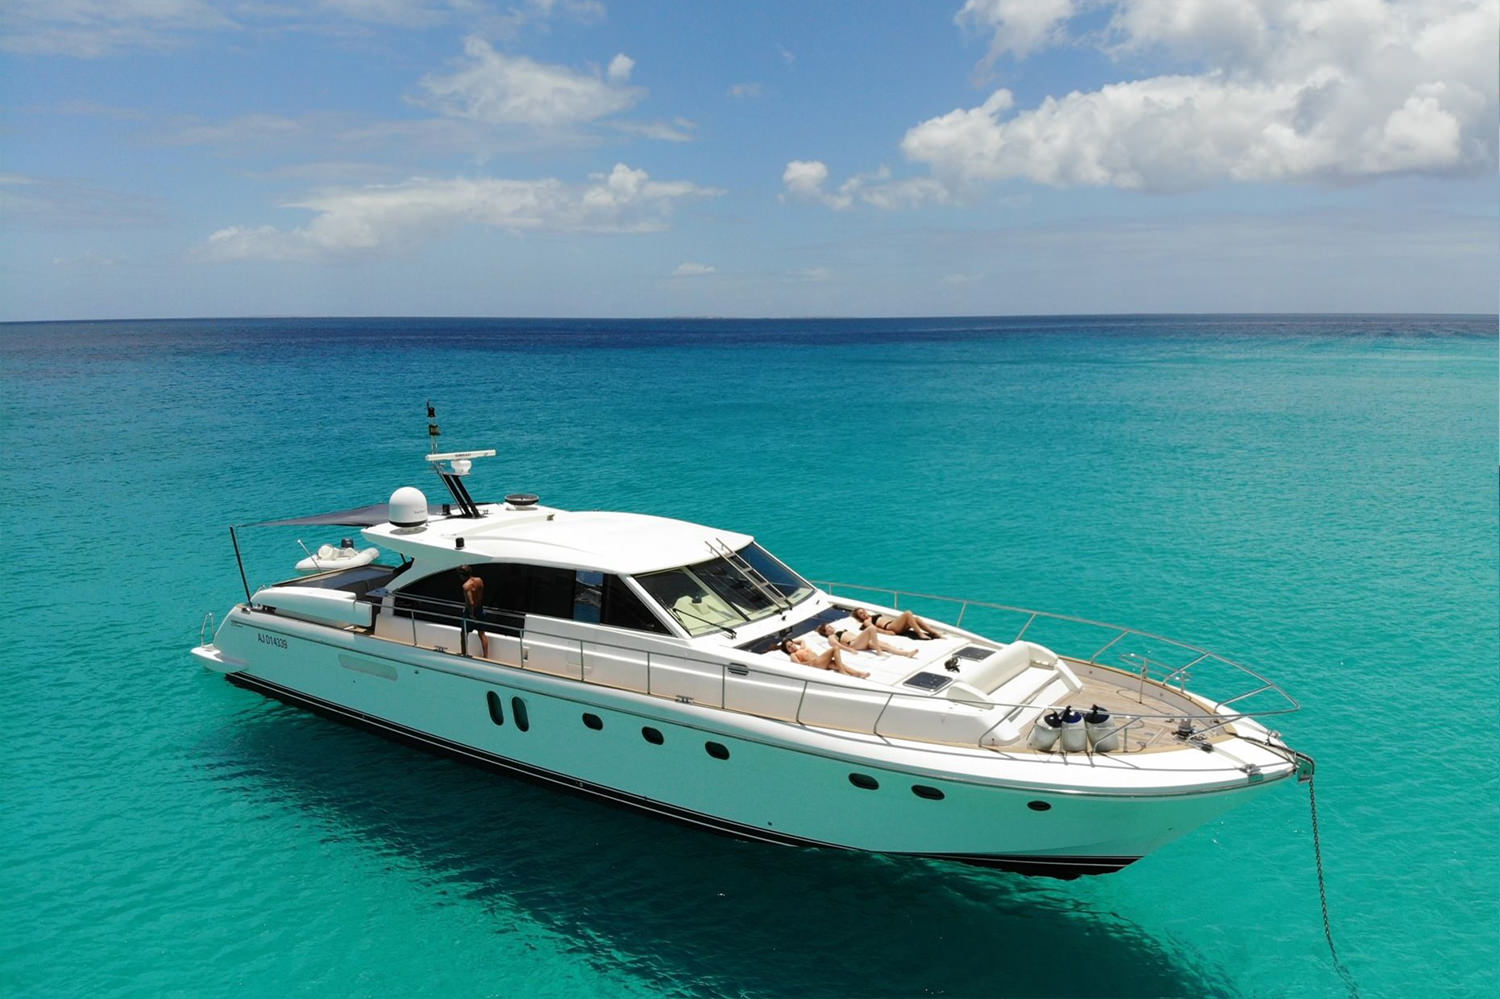 The Couach 71 is an elegantly designed yacht, with clean lines.